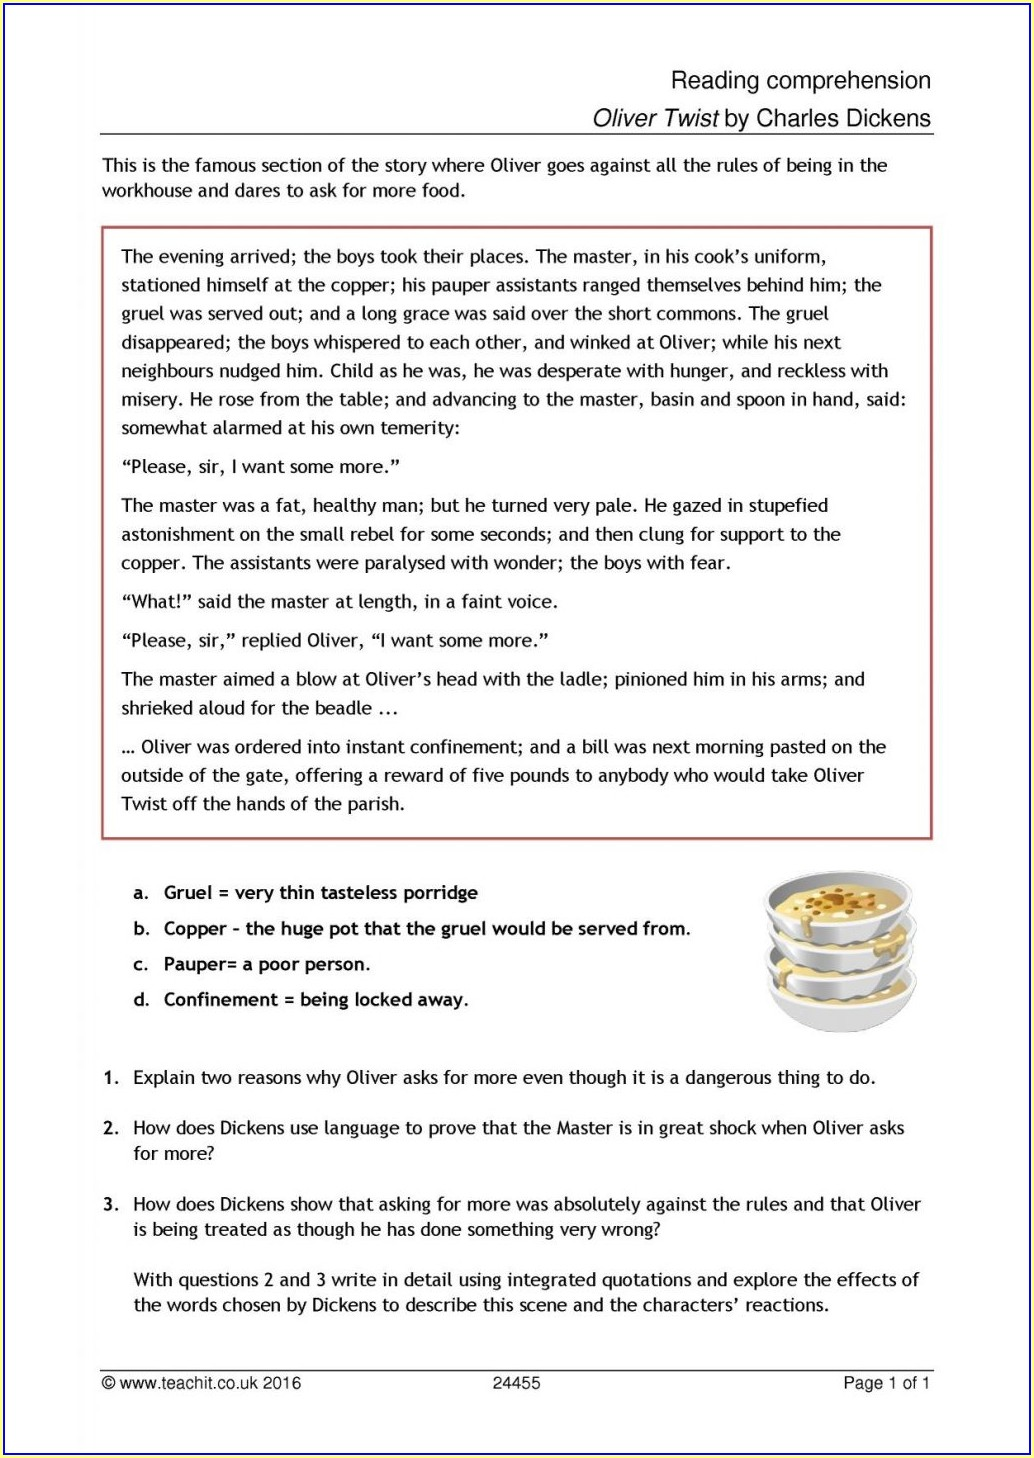 Reading Comprehension Free Printable Worksheets Uk